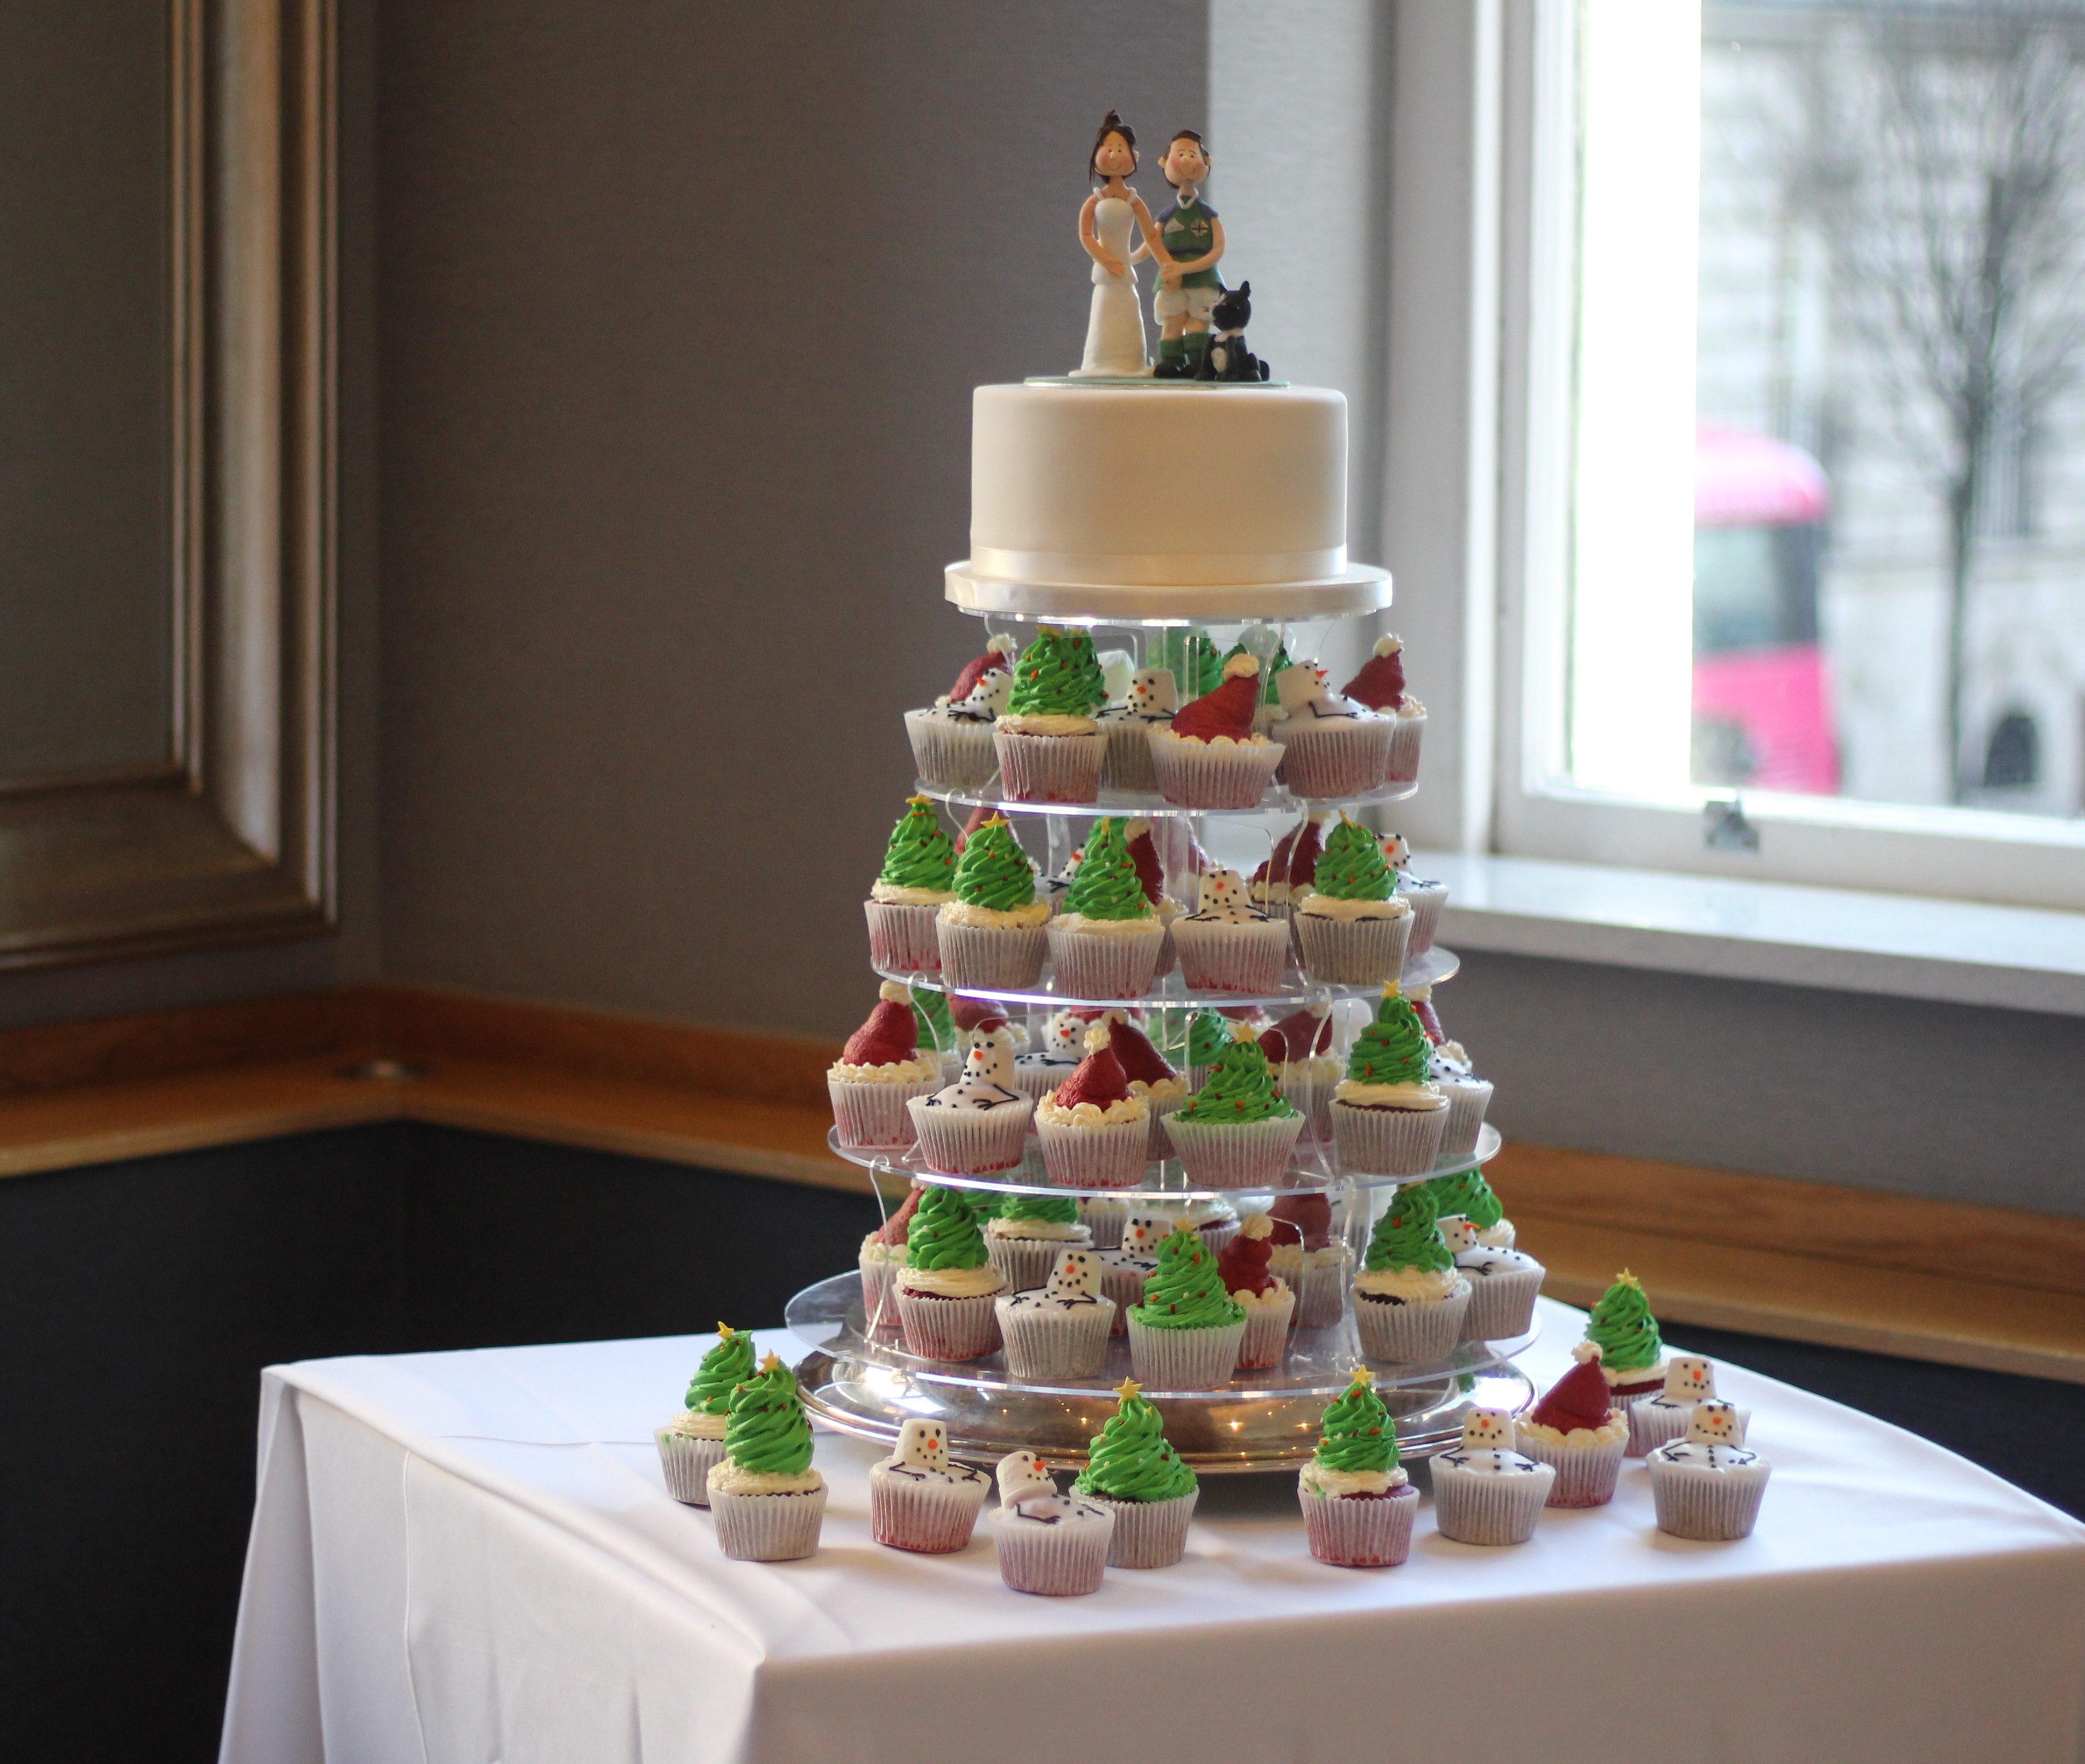 Cupcakes wedding cupcakes Christmas cupcakes cake topper bride and groom topper